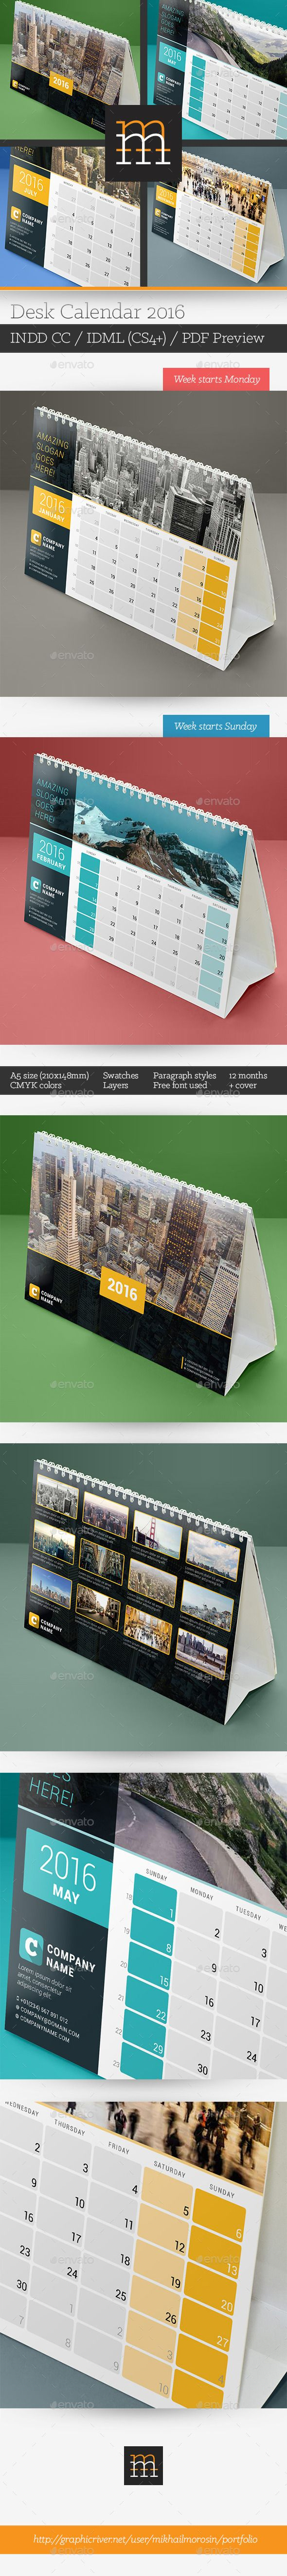 Desk Calendar 2016 Template PSD #design Download: http://graphicriver.net/item/-desk-calendar-2016-/13234450?ref=ksioks